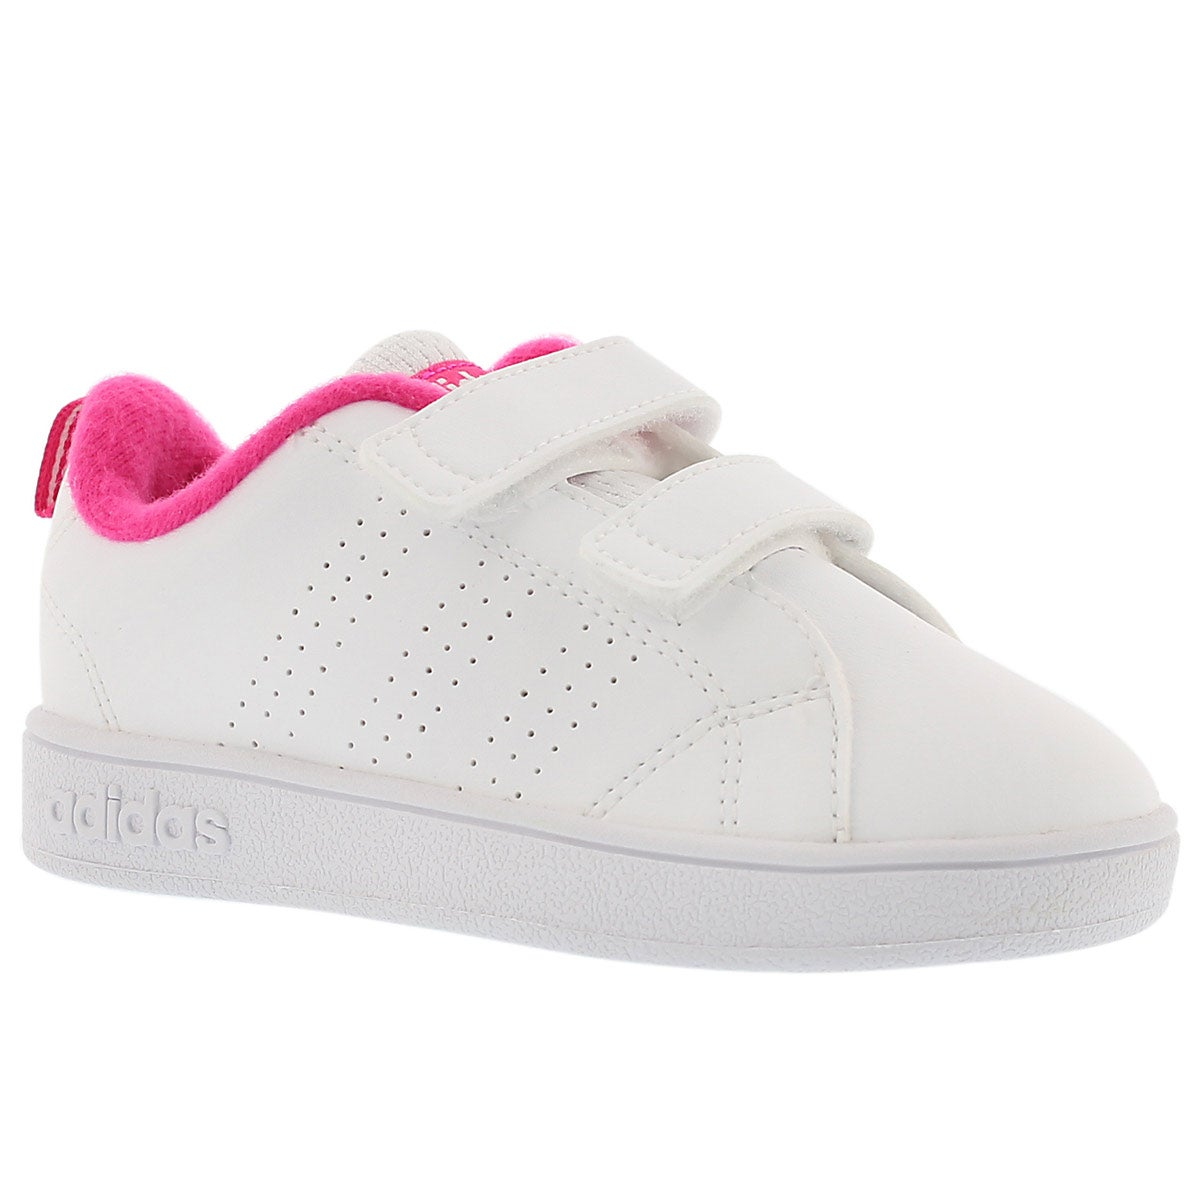 Espadrilles ADVANTAGE CLEAN, blanc/rose, bébés